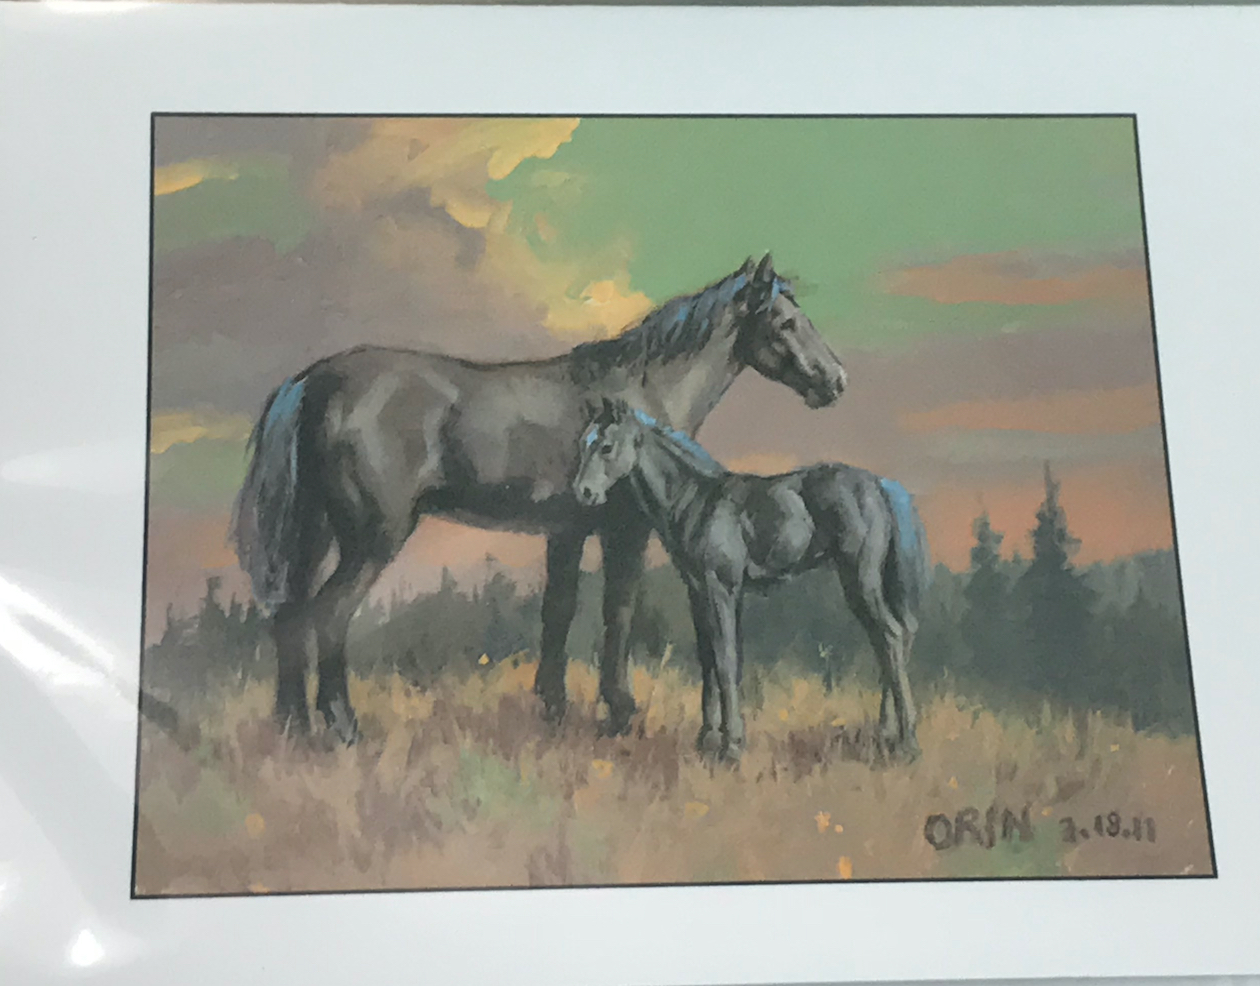 A painting of some horses by Orin Voorheis. More than 20 years after being shot in the head on his mission, Voorheis is living a happy life surrounded by family and friends.